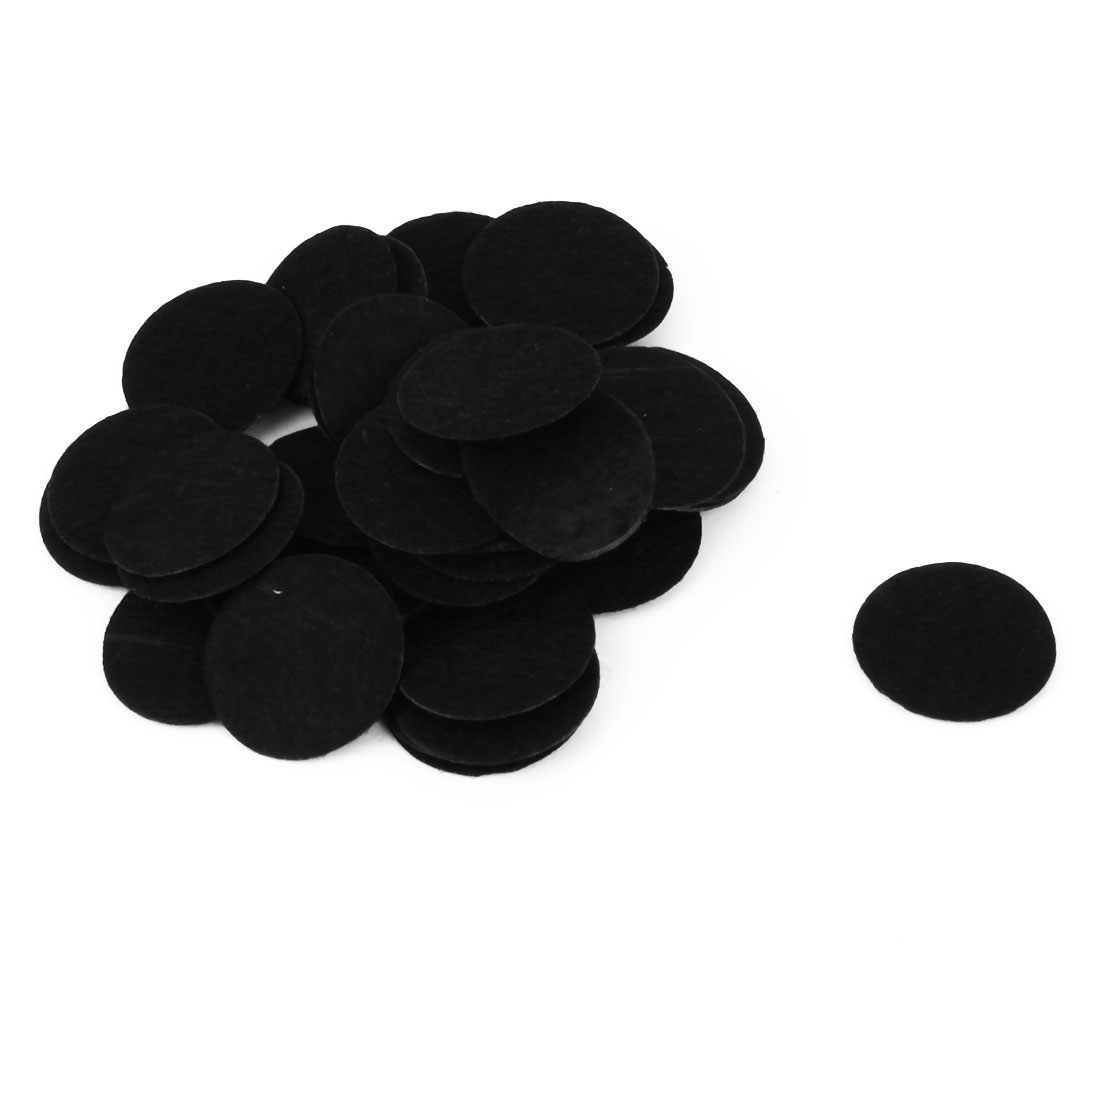 Hair Flower Bottom DIY Craft Round Shaped Circle Pad Black 25mm Dia 50pcs